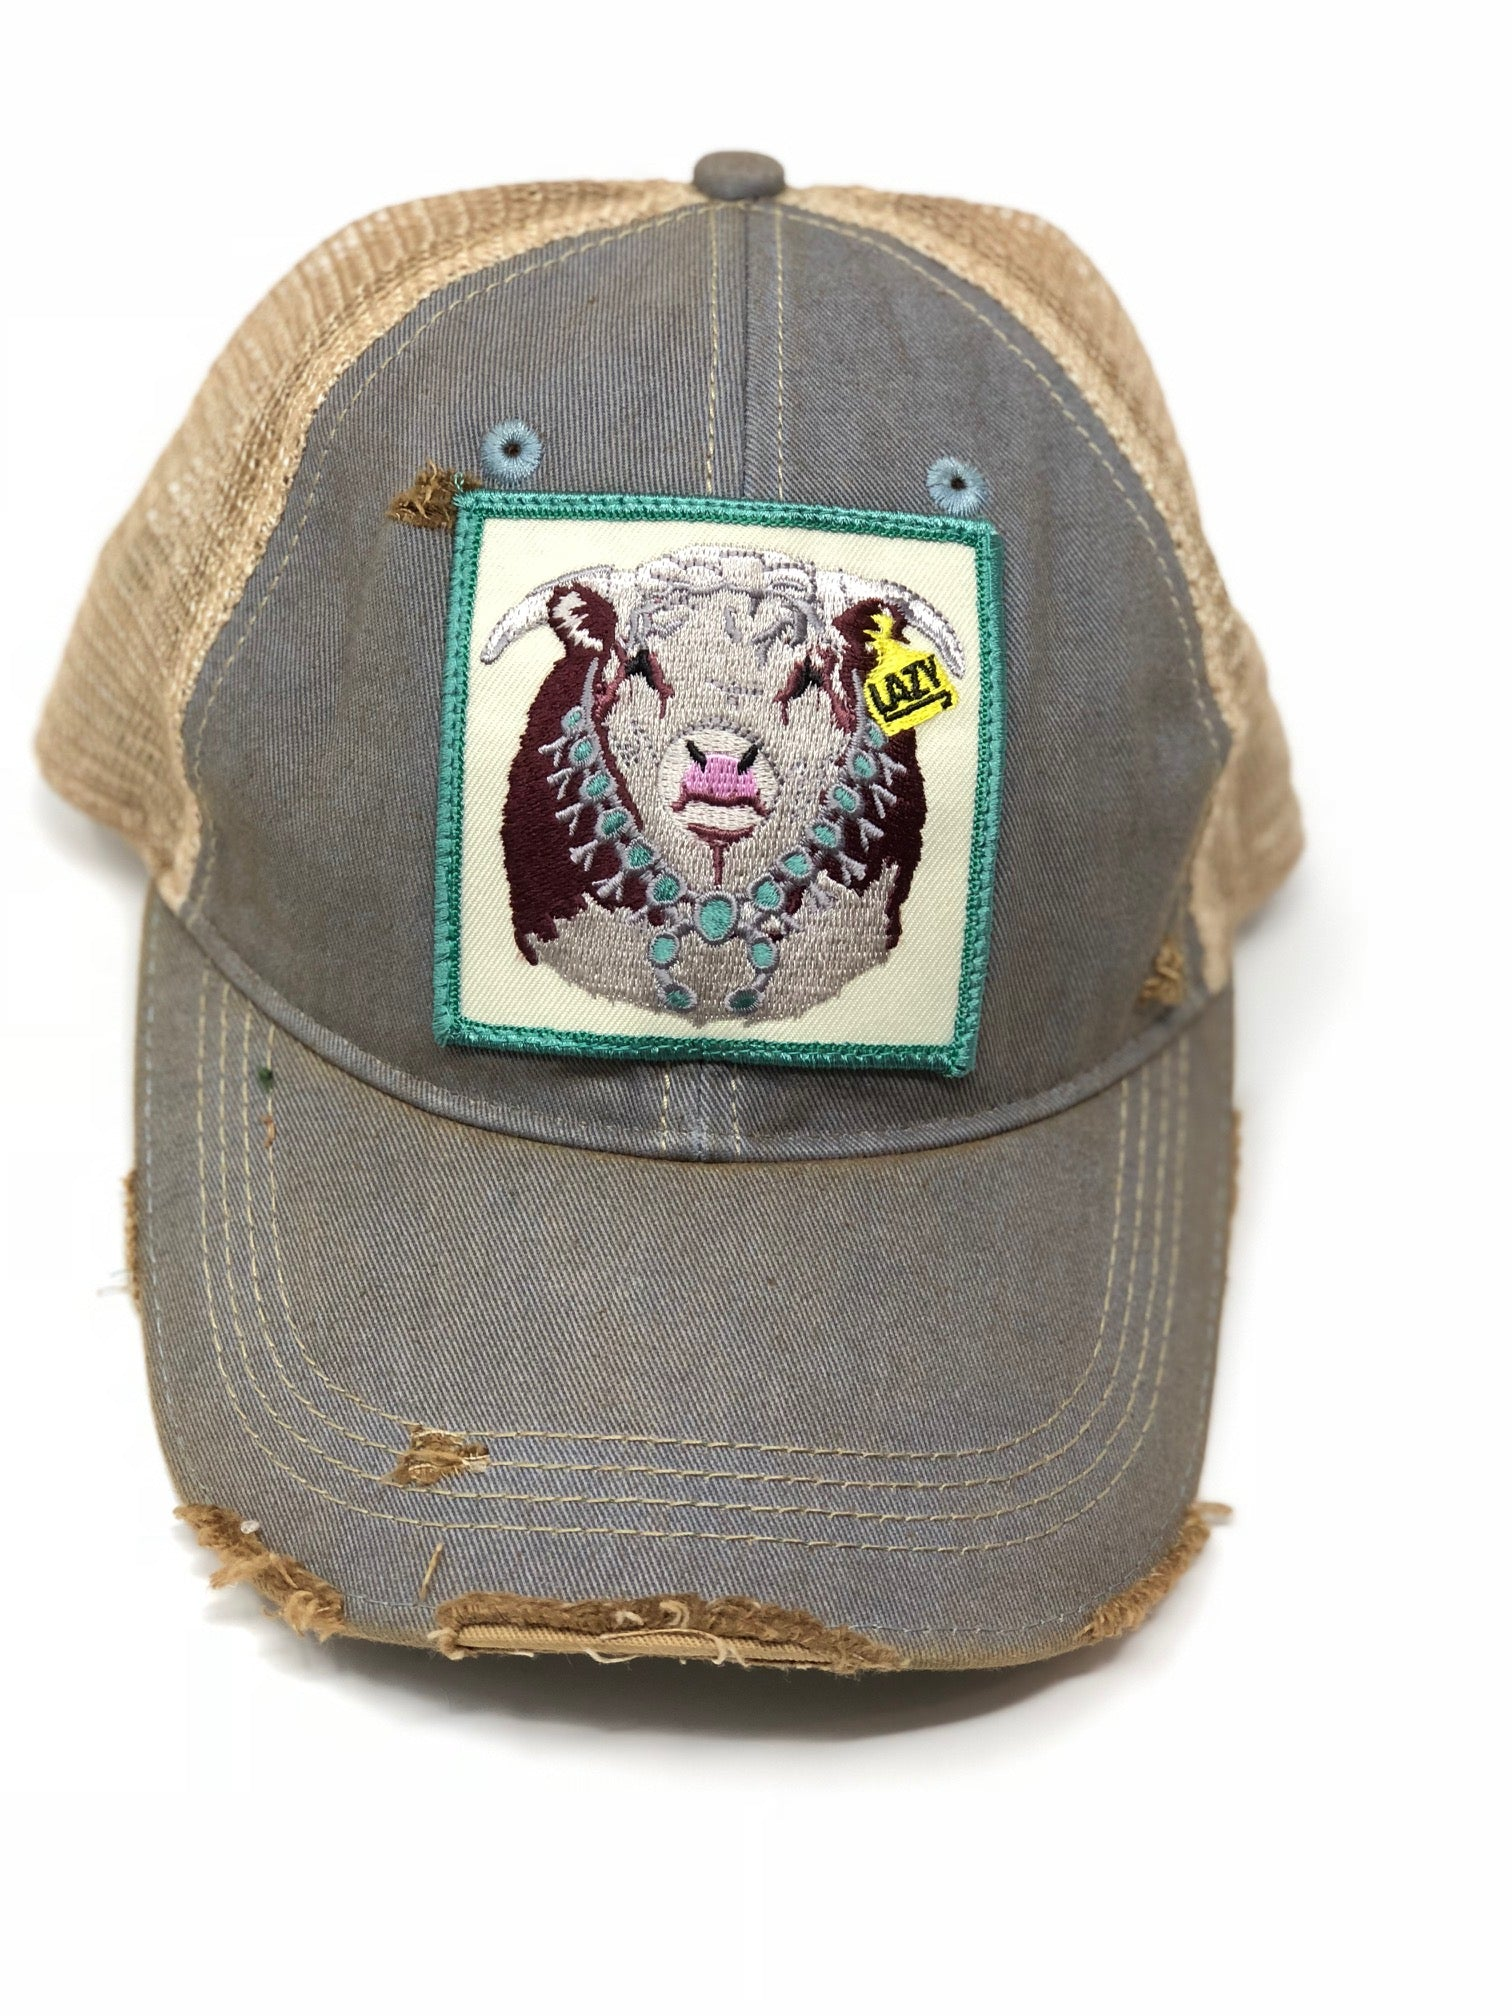 Lazy J Sky Blue & Tan Unstructured Squash Blossom Patch Cap